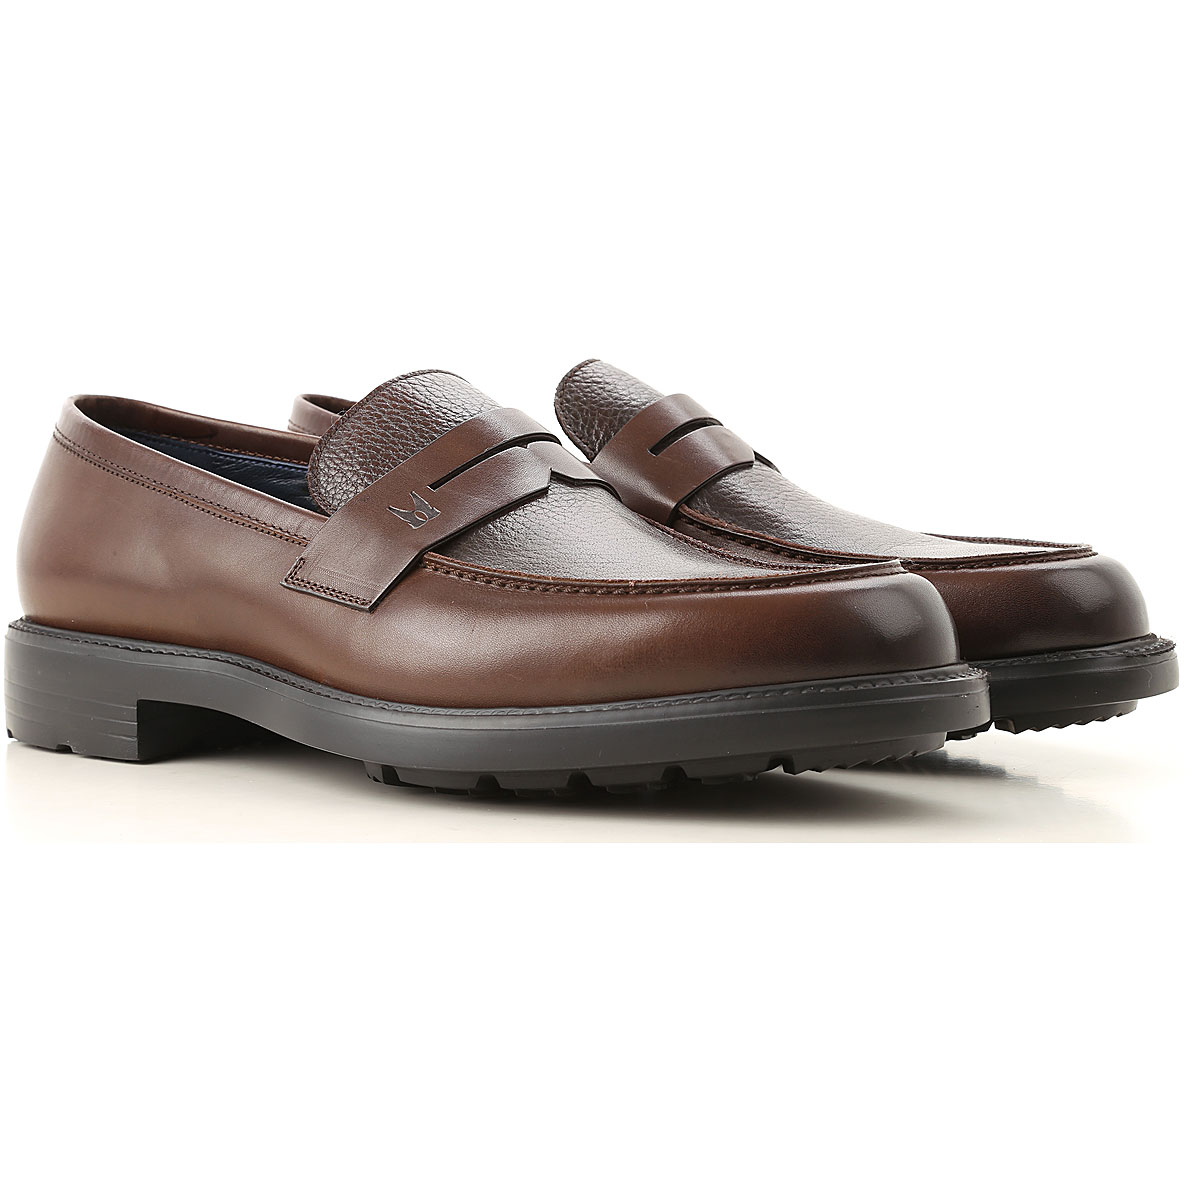 Image of Moreschi Loafers for Men, Brown, Leather, 2017, 10 10.5 11 11.5 12 13 7 7.5 8 8.5 9 9.5